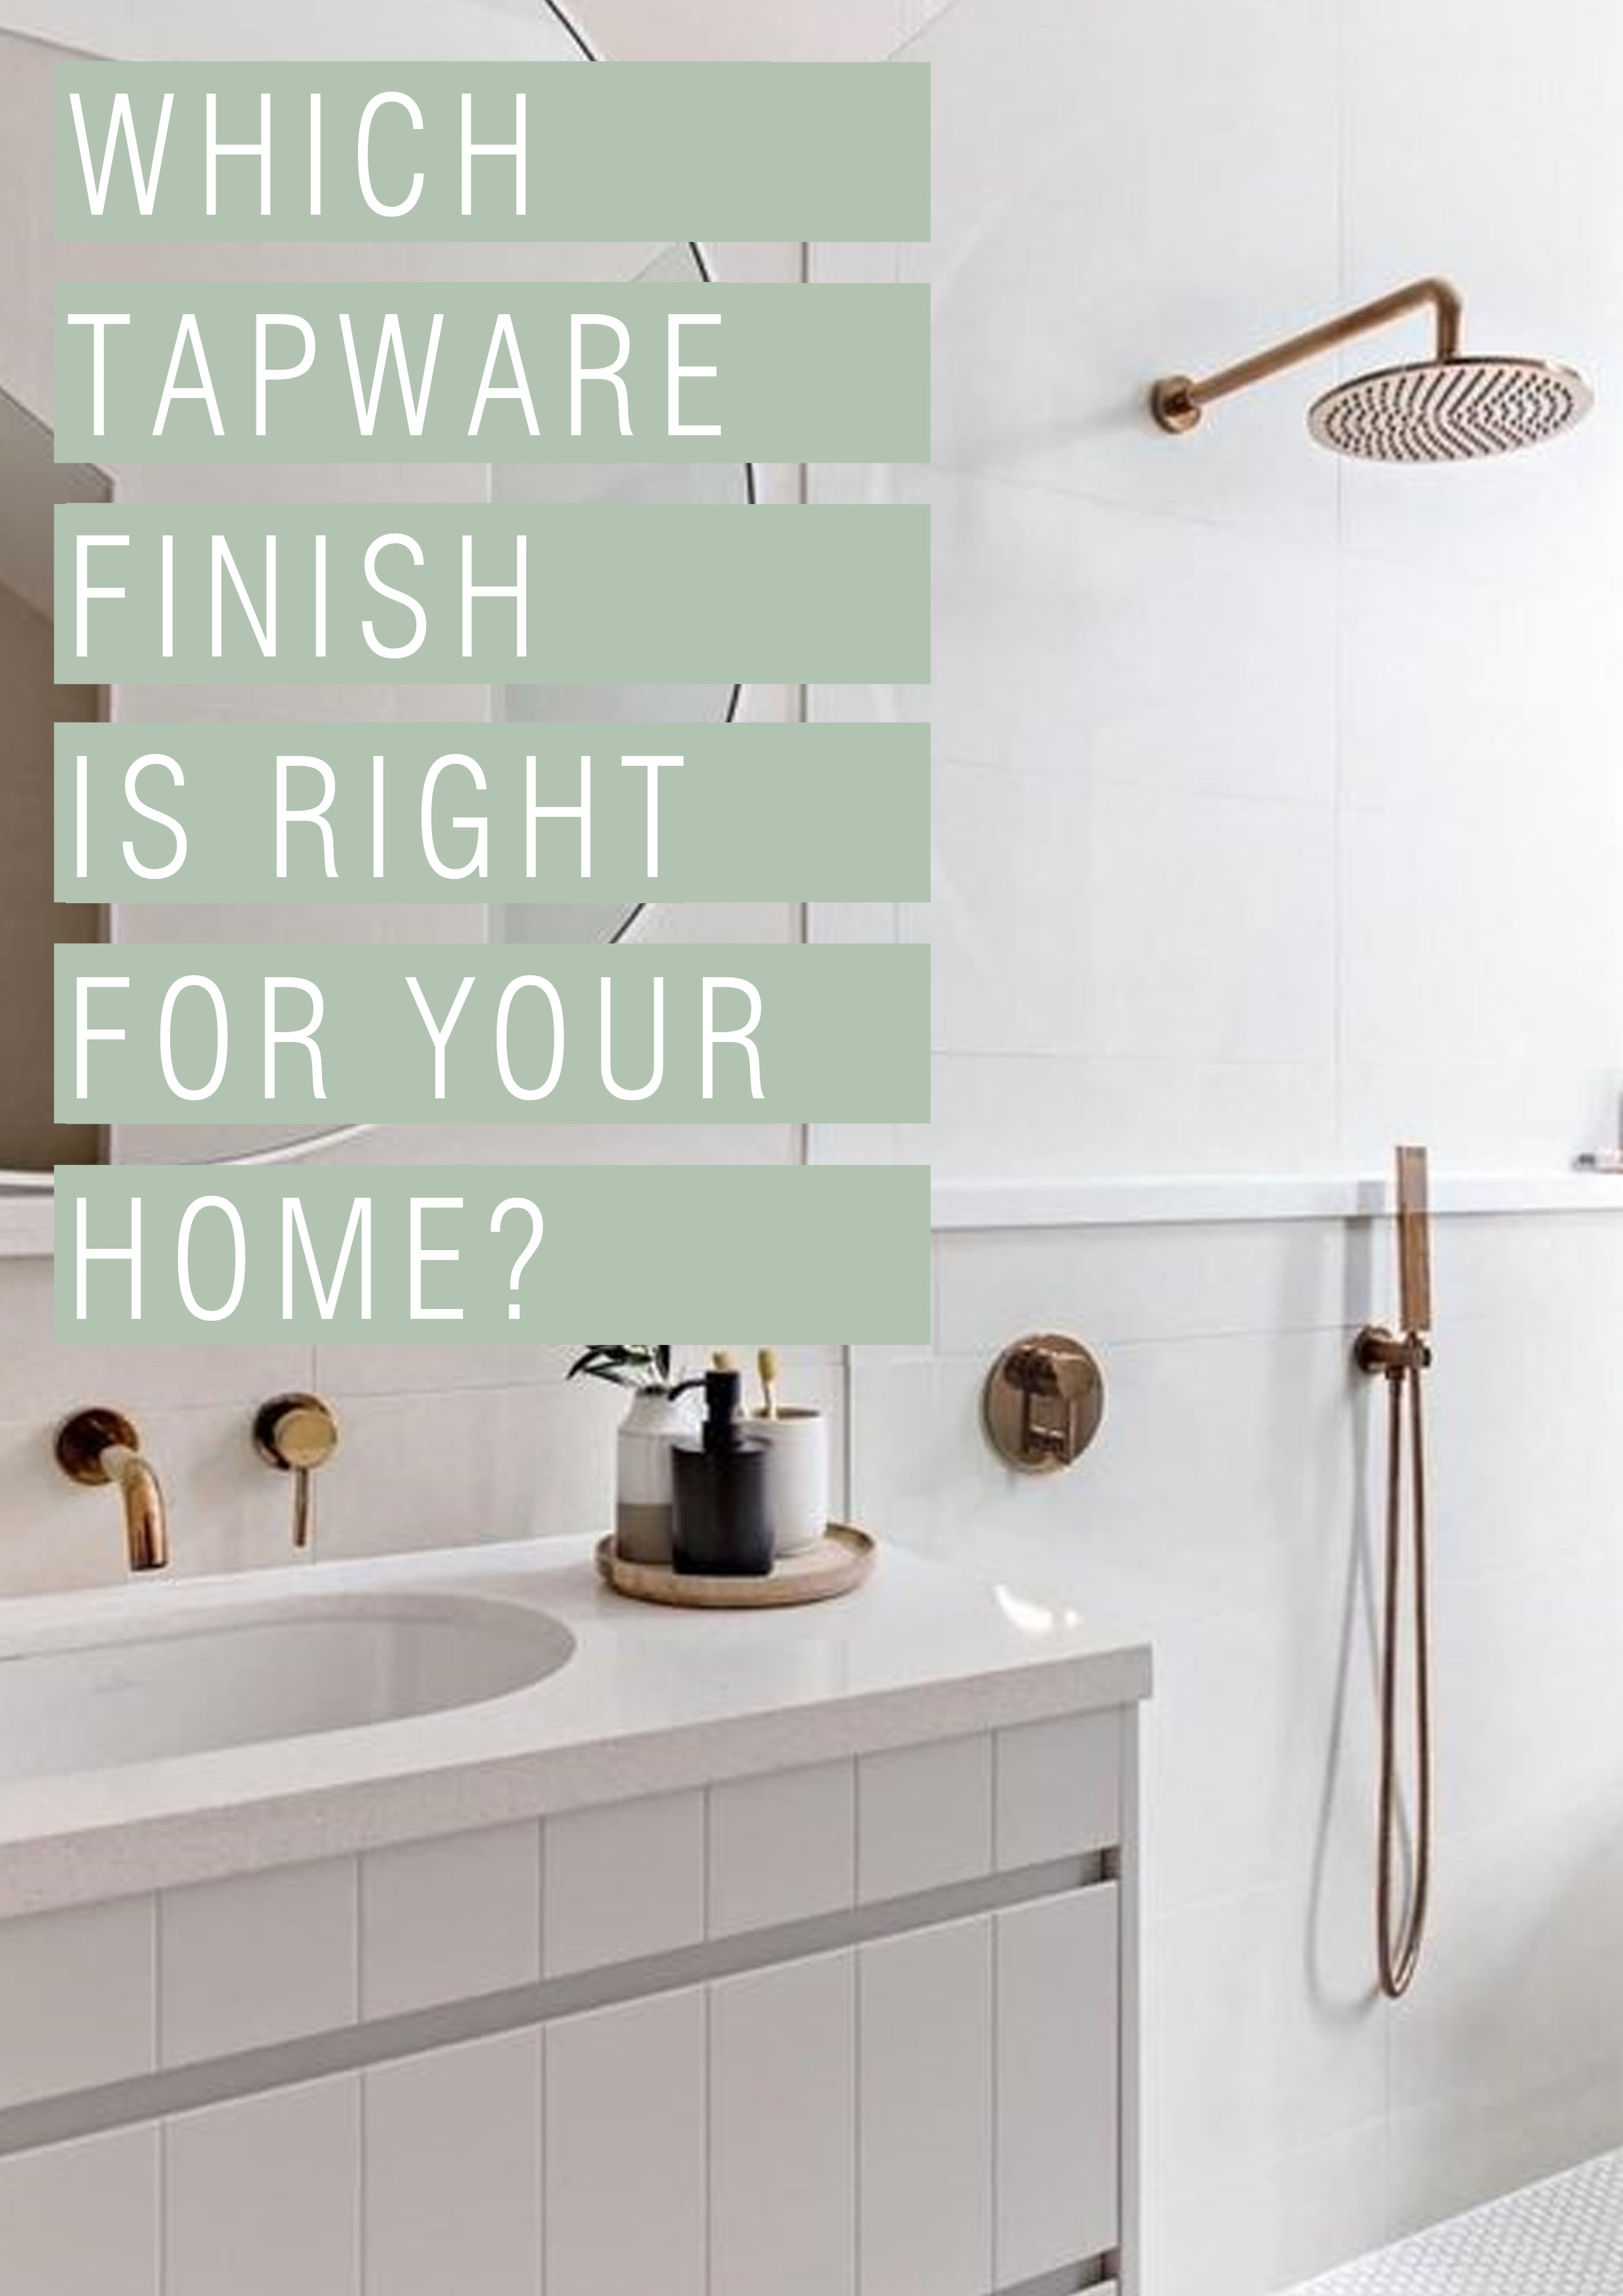 Weekly Blog | Which Tapware Finish is right for you home? | - 24.08.2019